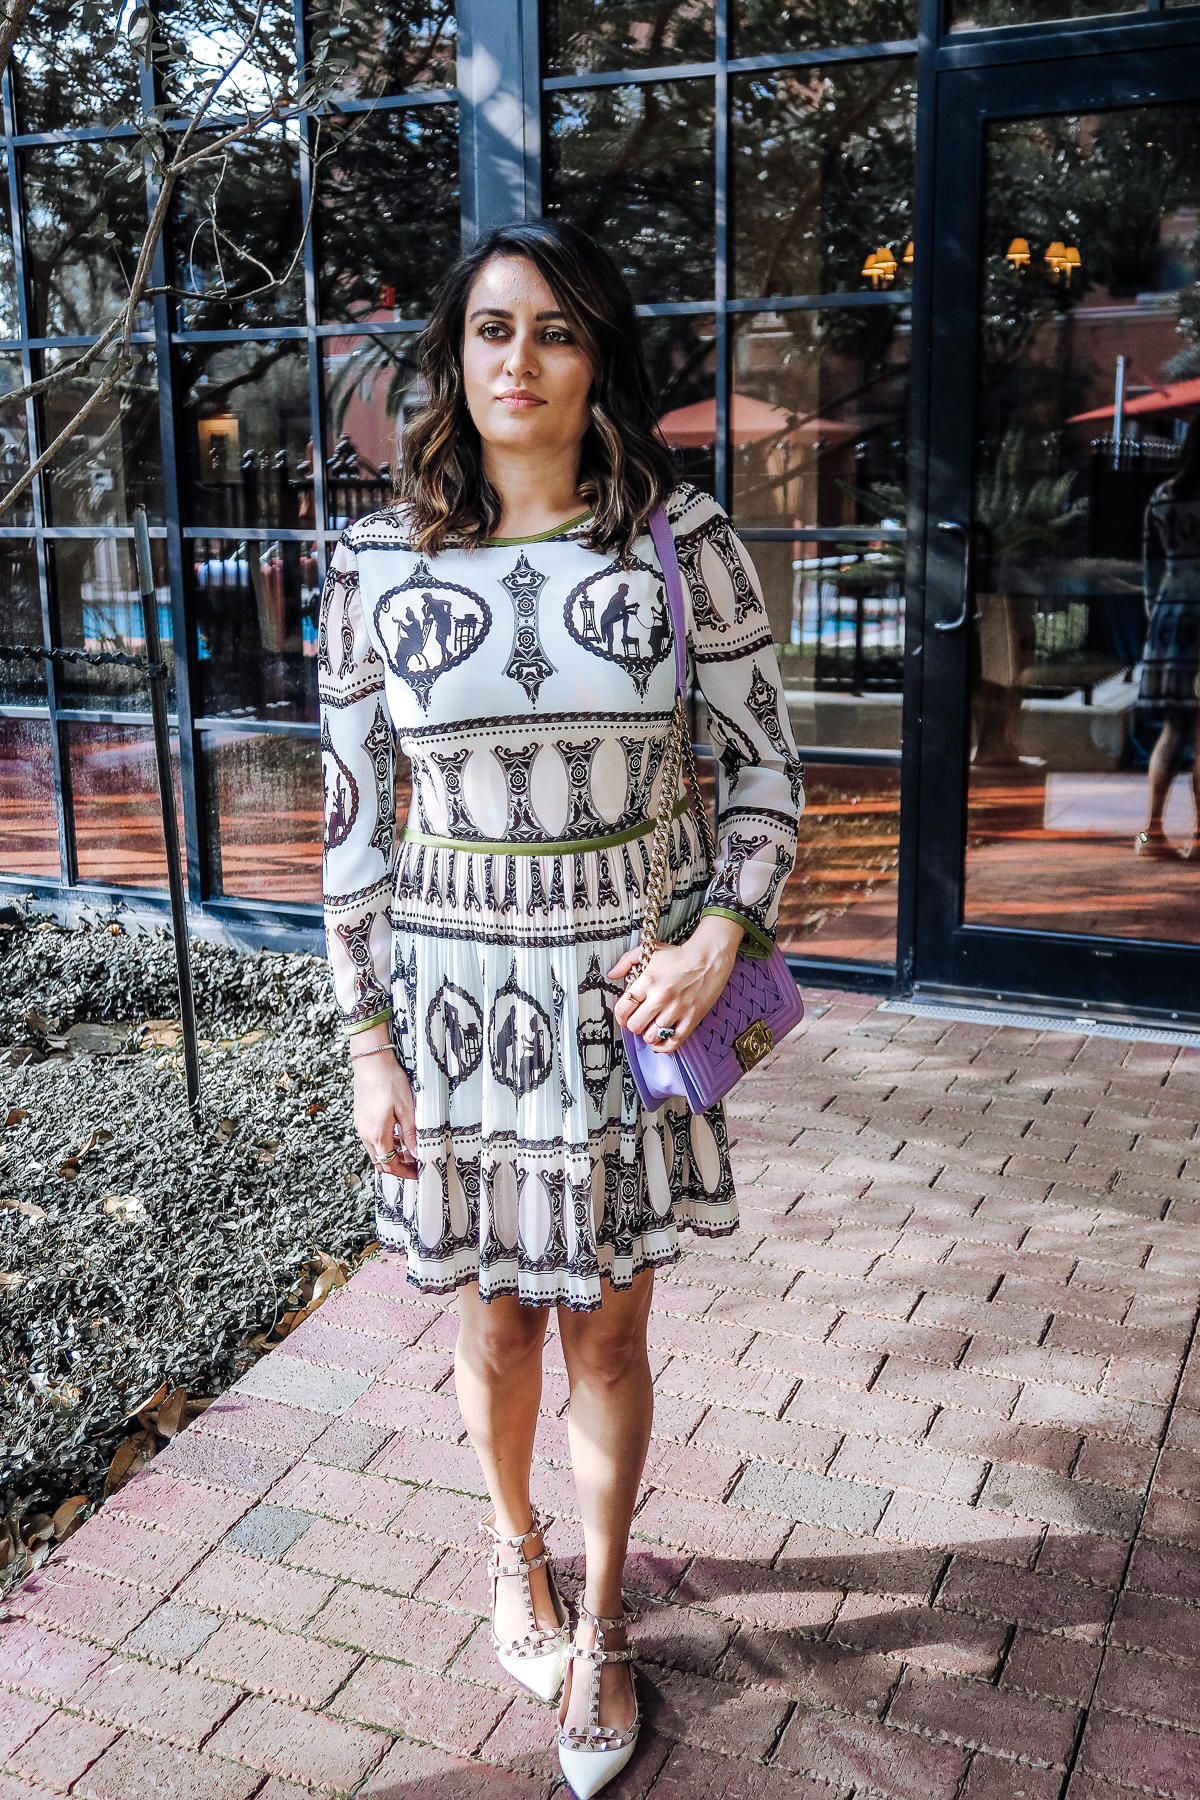 Image of ted baker dress | Valentino shoes | chanel bag | Hotel Granduca